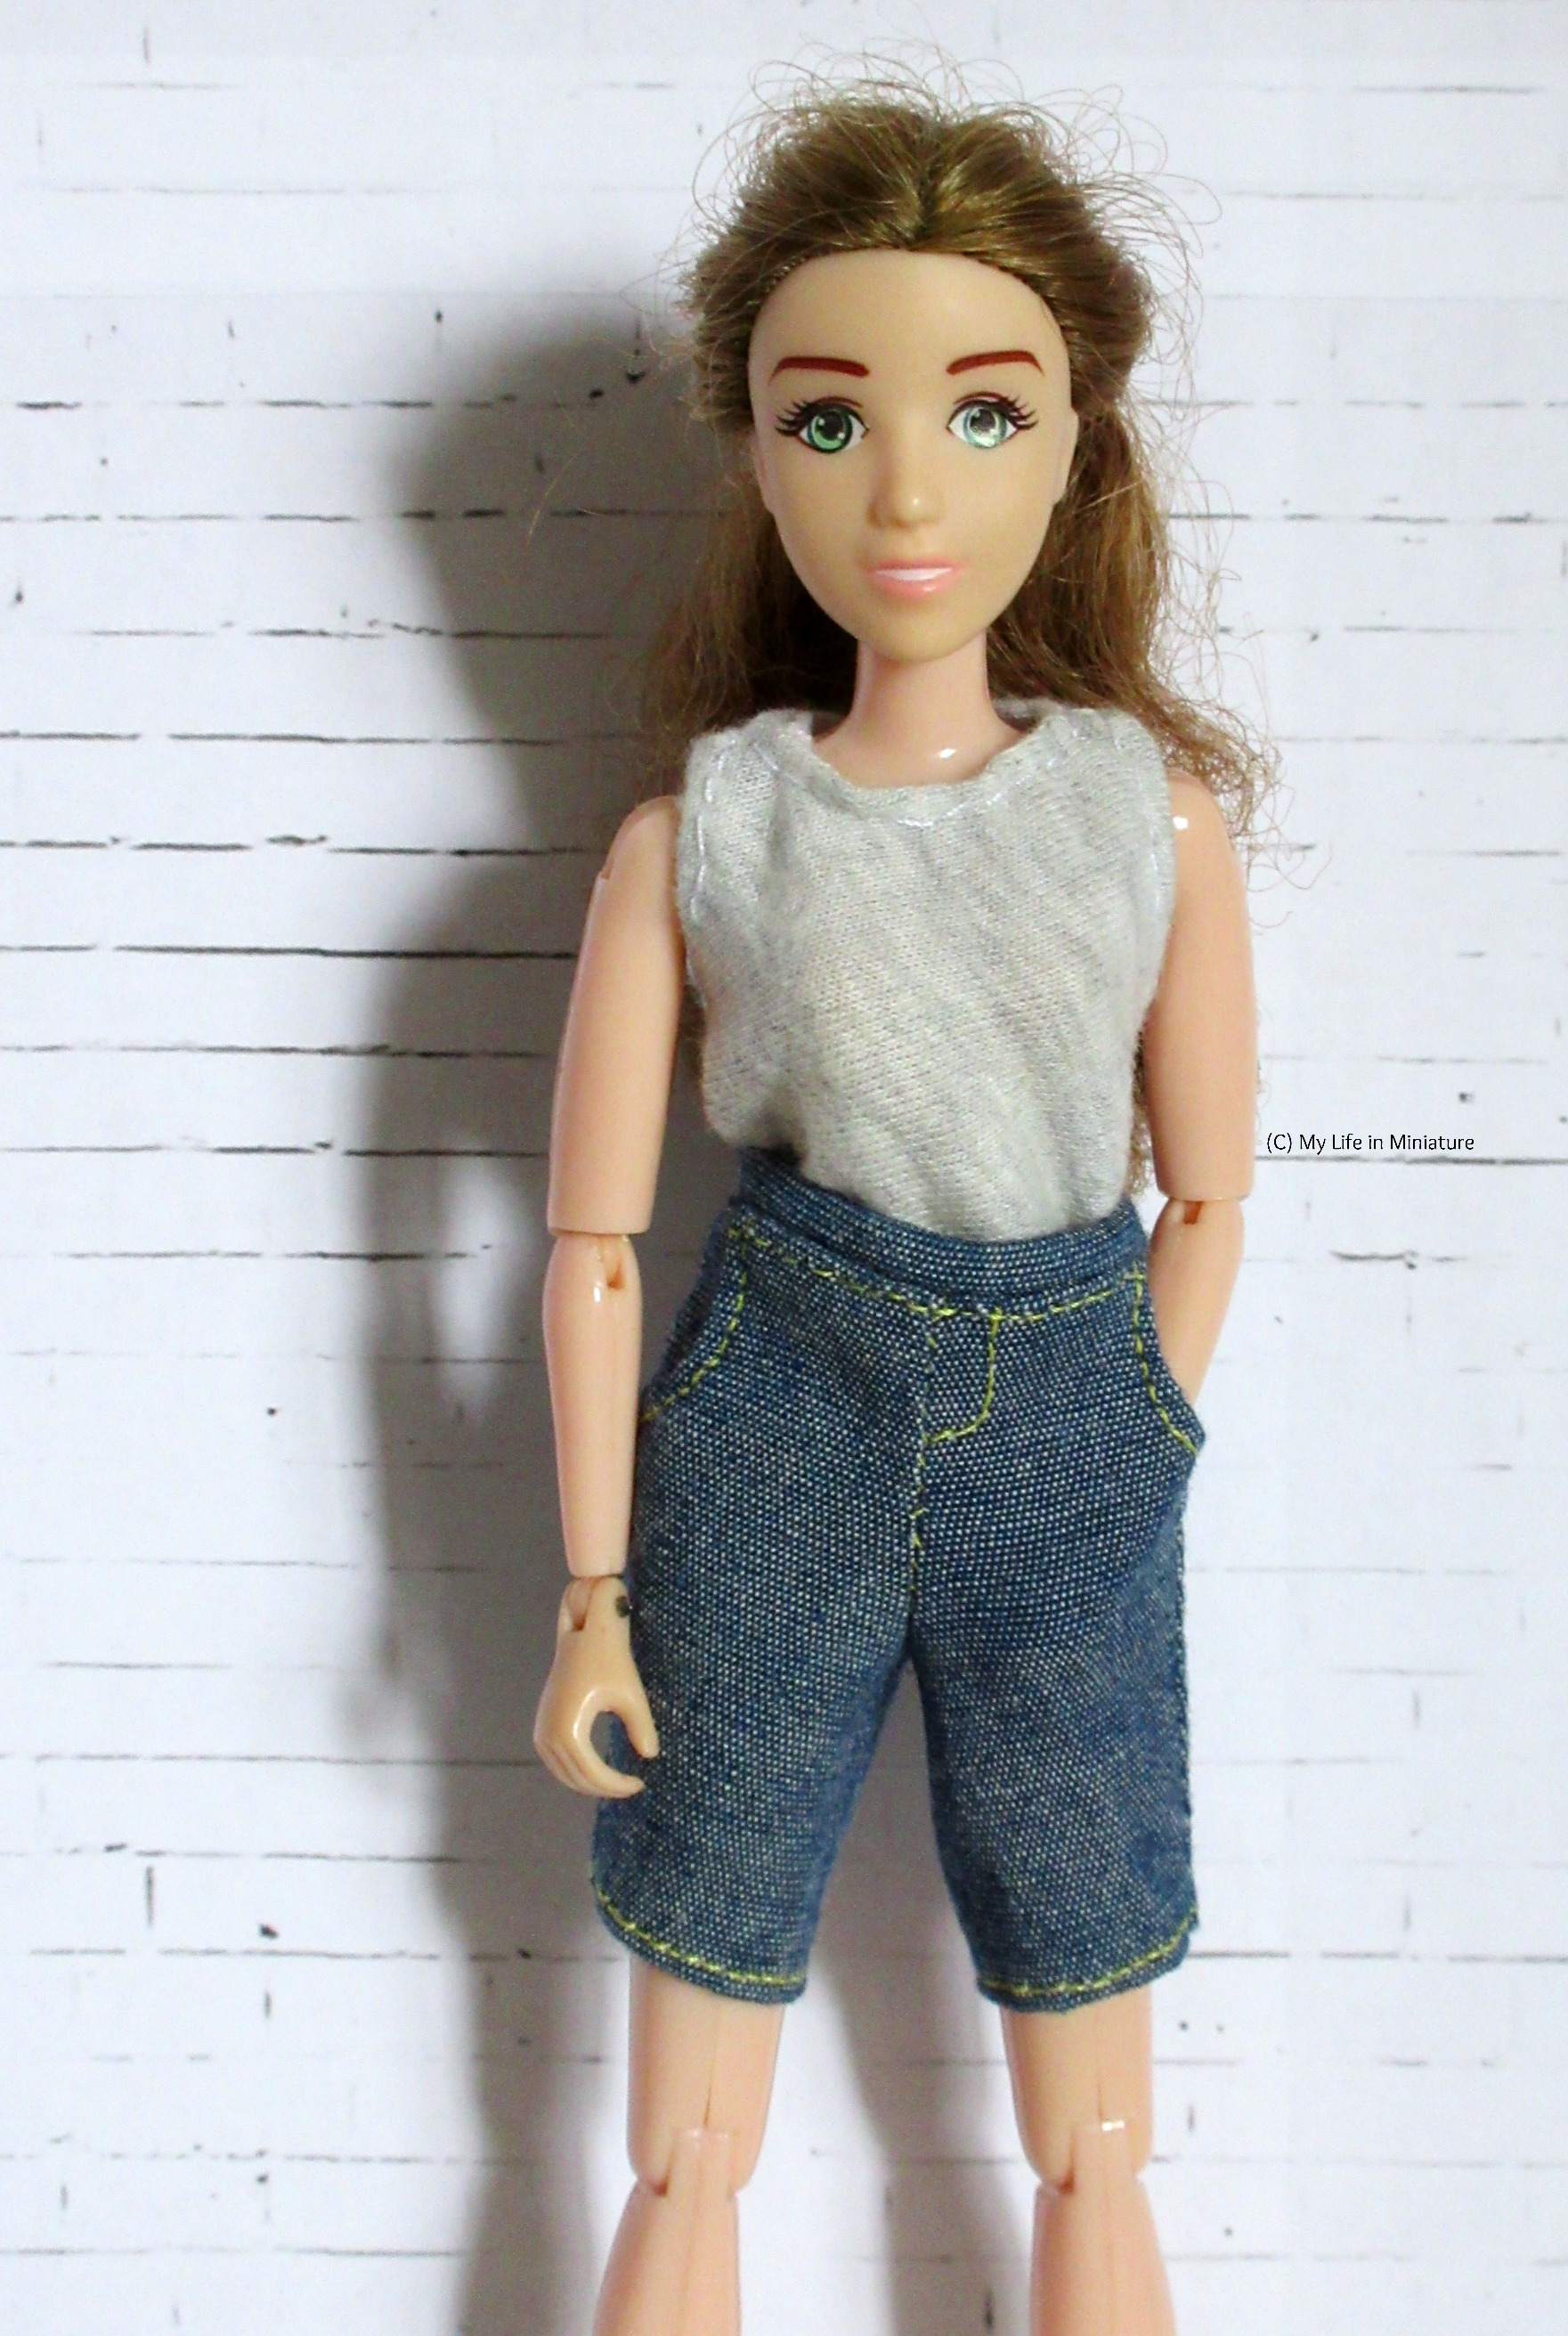 Sarah stands in front of a white brick background, looking at the camera. She wears a grey shirt tucked into a pair of denim shorts. One hand is in a pocket of the shorts.